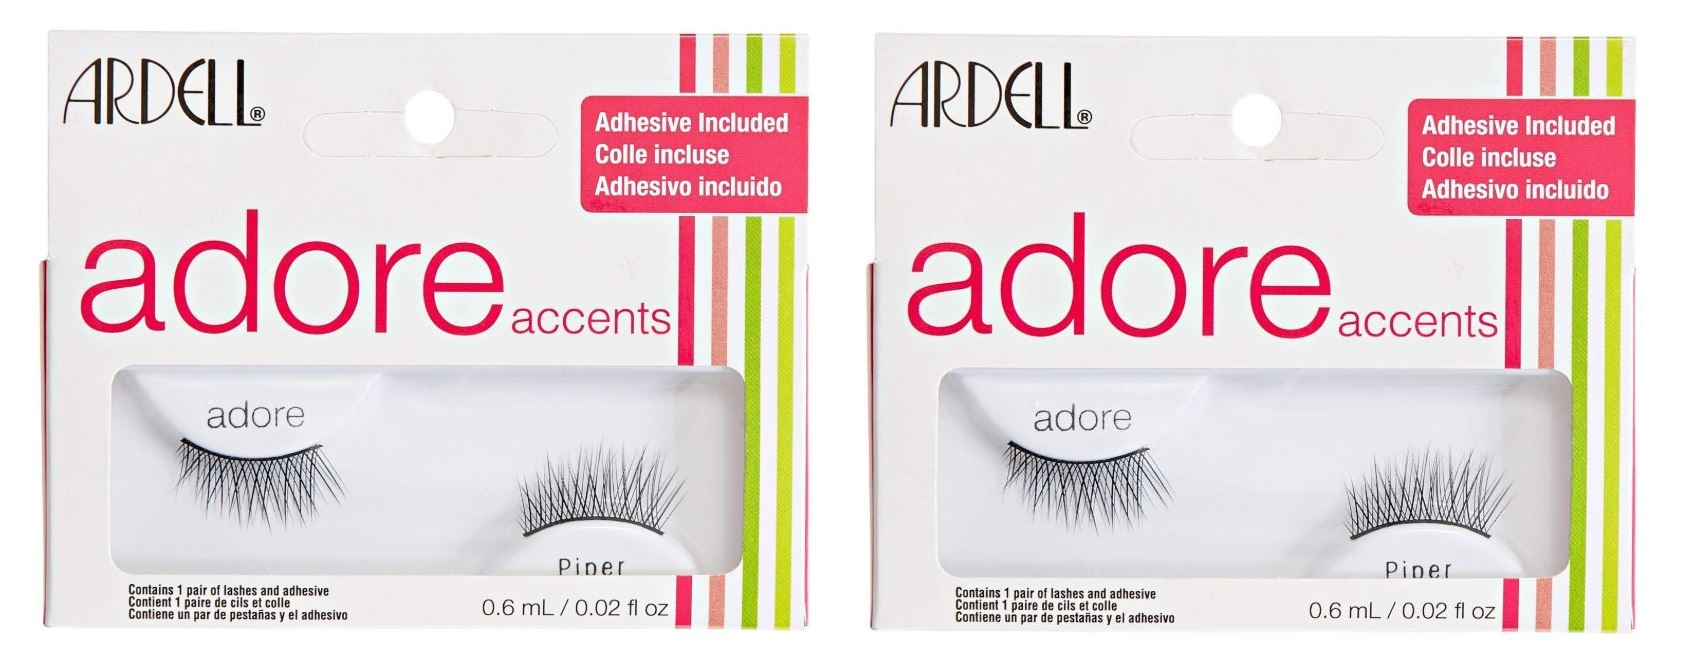 c94ef2459d0 Sentinel 2 x ARDELL Adore 'Piper' Lashes - Black False Lashes - Adhesive  Included